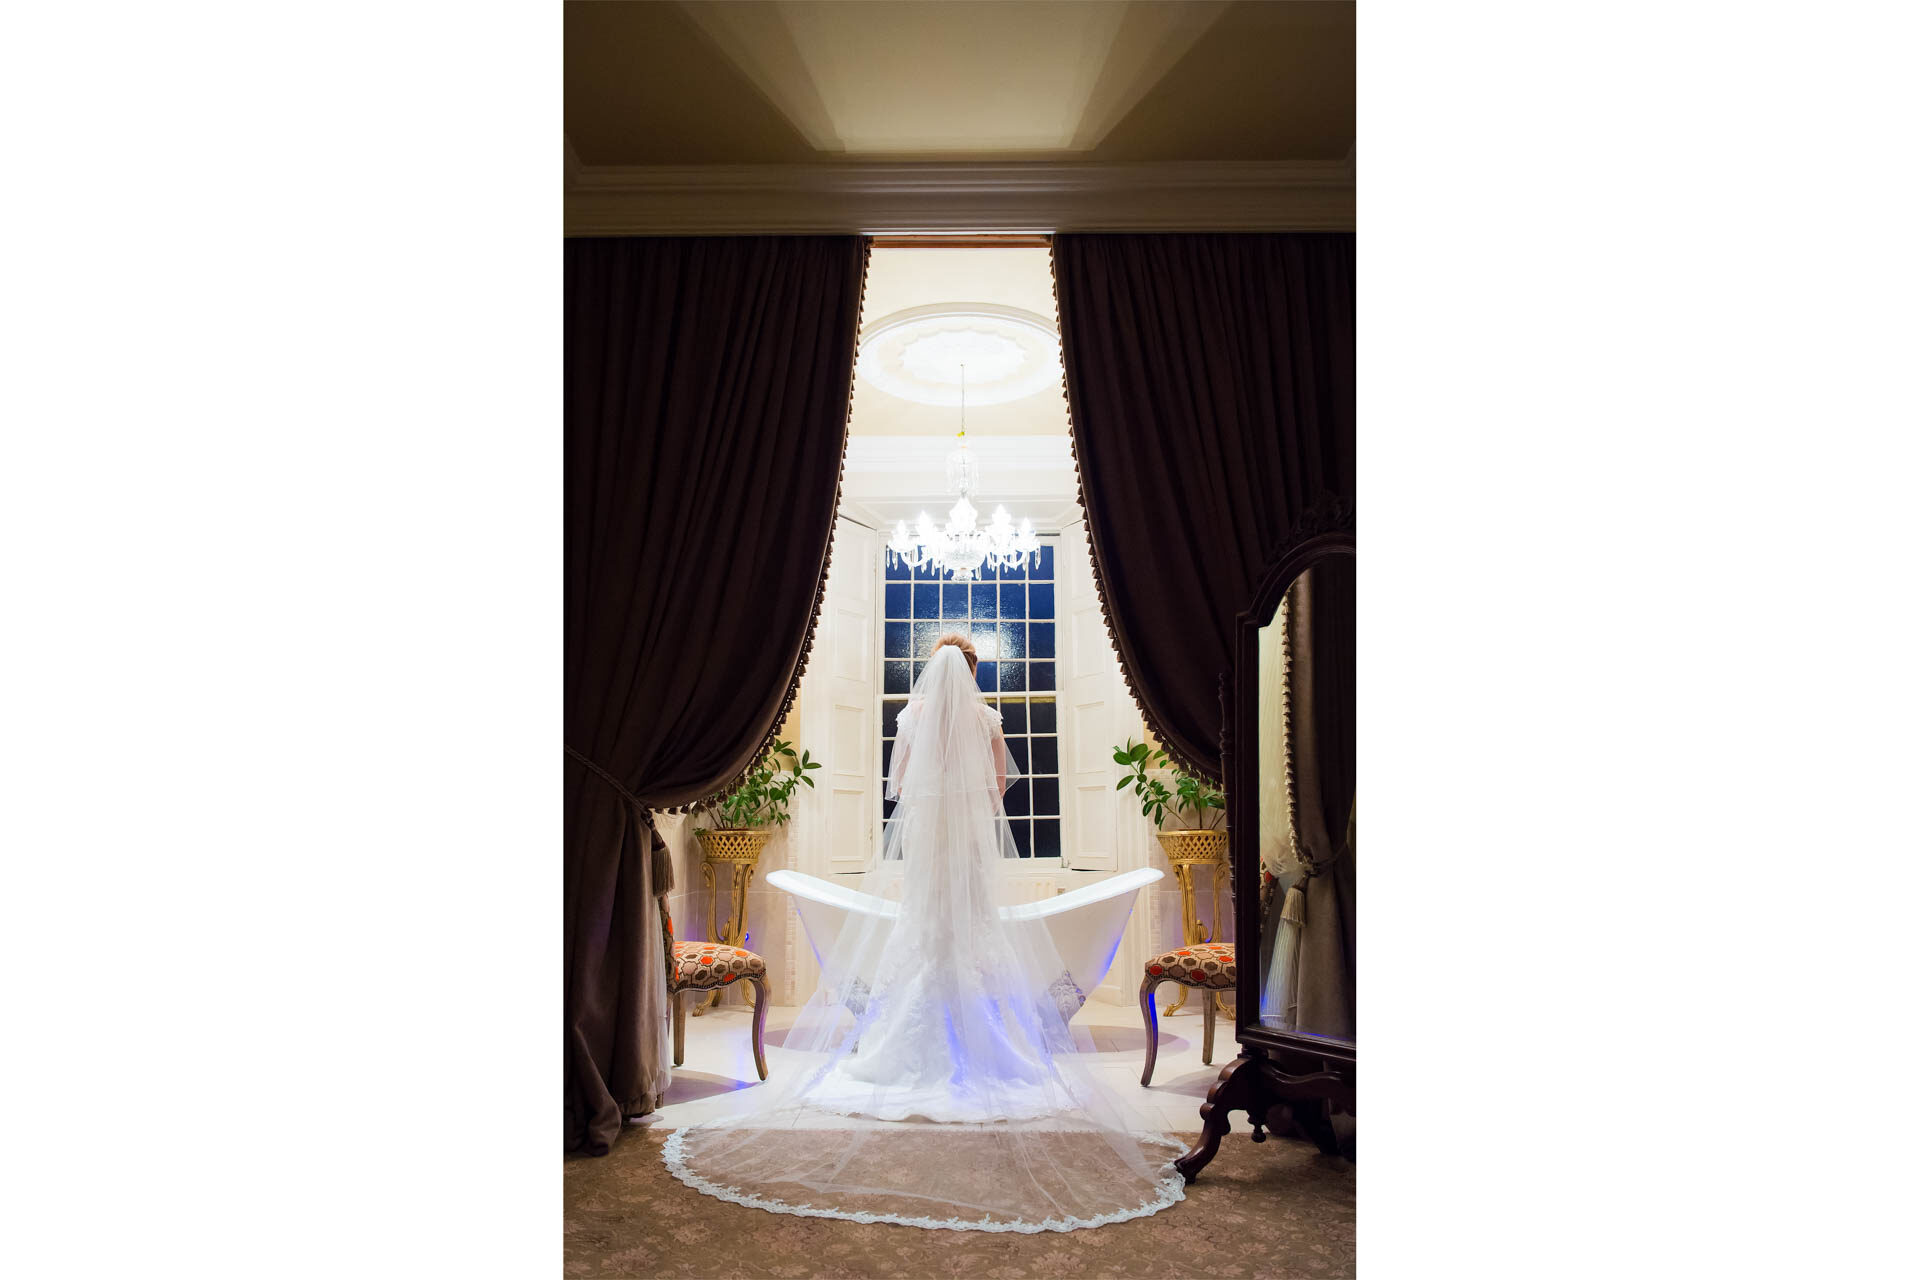 Alison in the bridal suite during on her wedding day at Cabra Castle, by Fermanagh, Tyrone and Northern Ireland wedding photographer, Trevor Lucy Photography